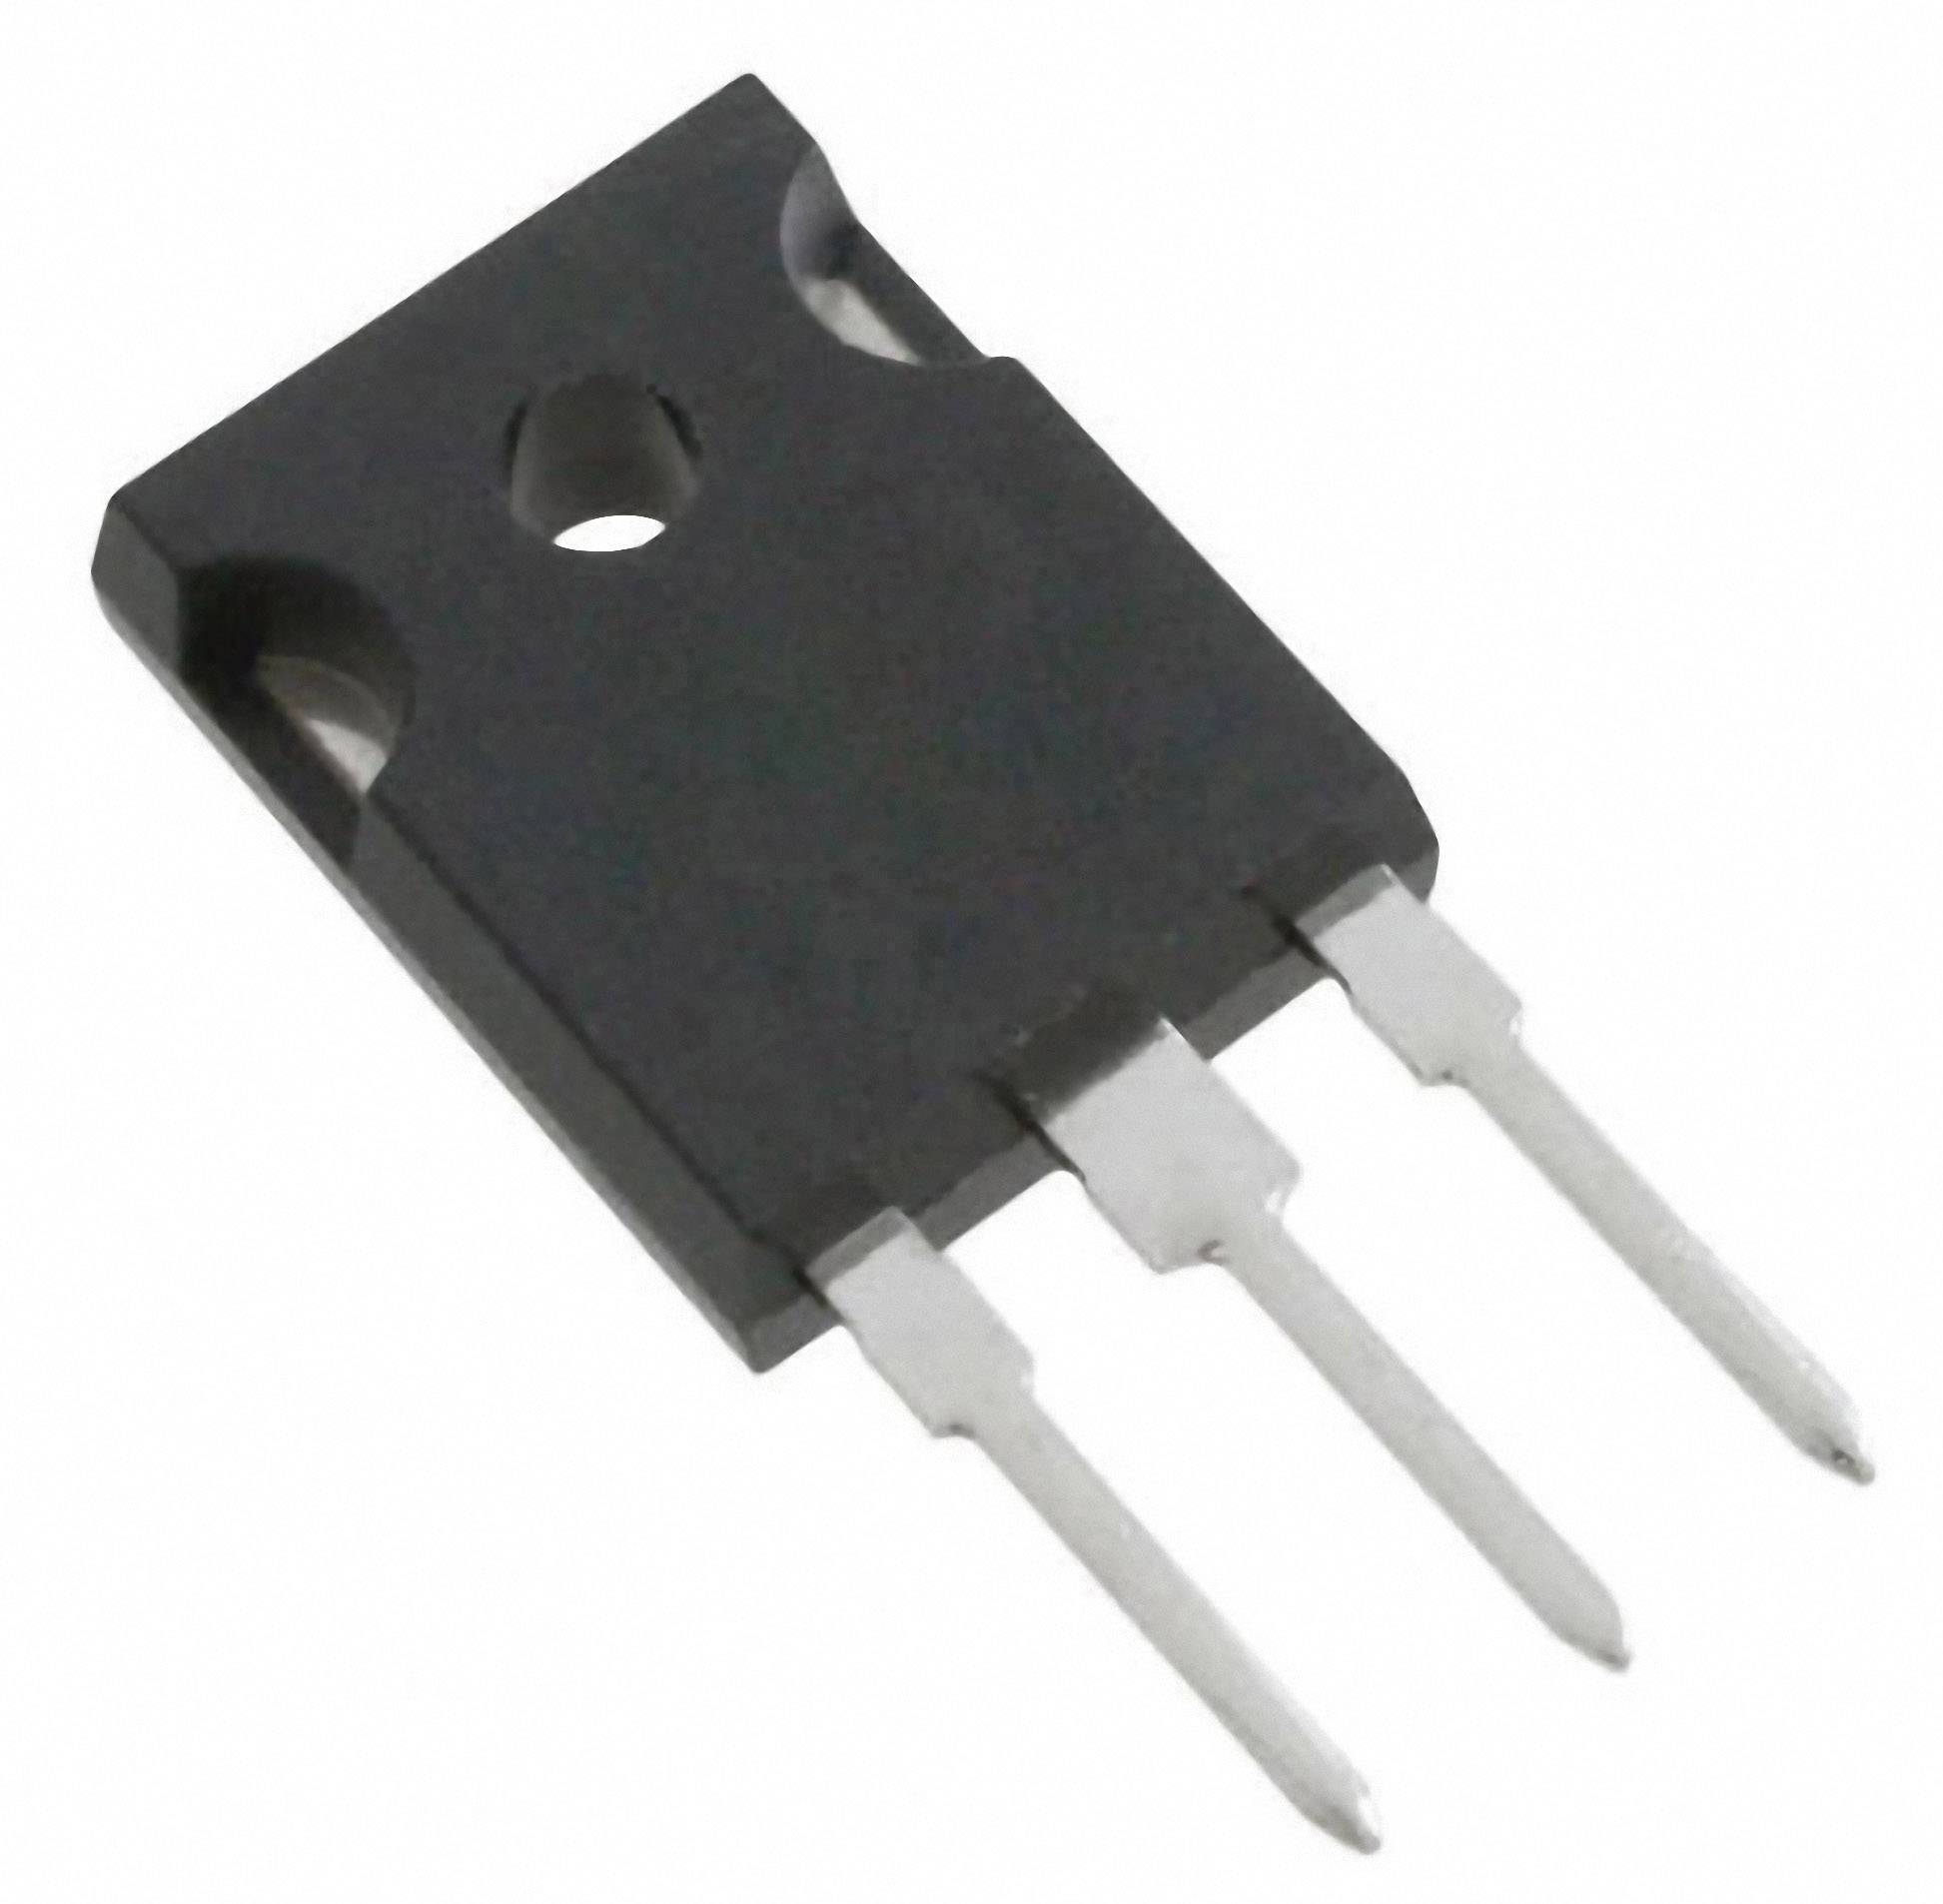 MOSFET Fairchild Semiconductor N kanál N CH 600V 5 FCH072N60F TO-247-3 FSC